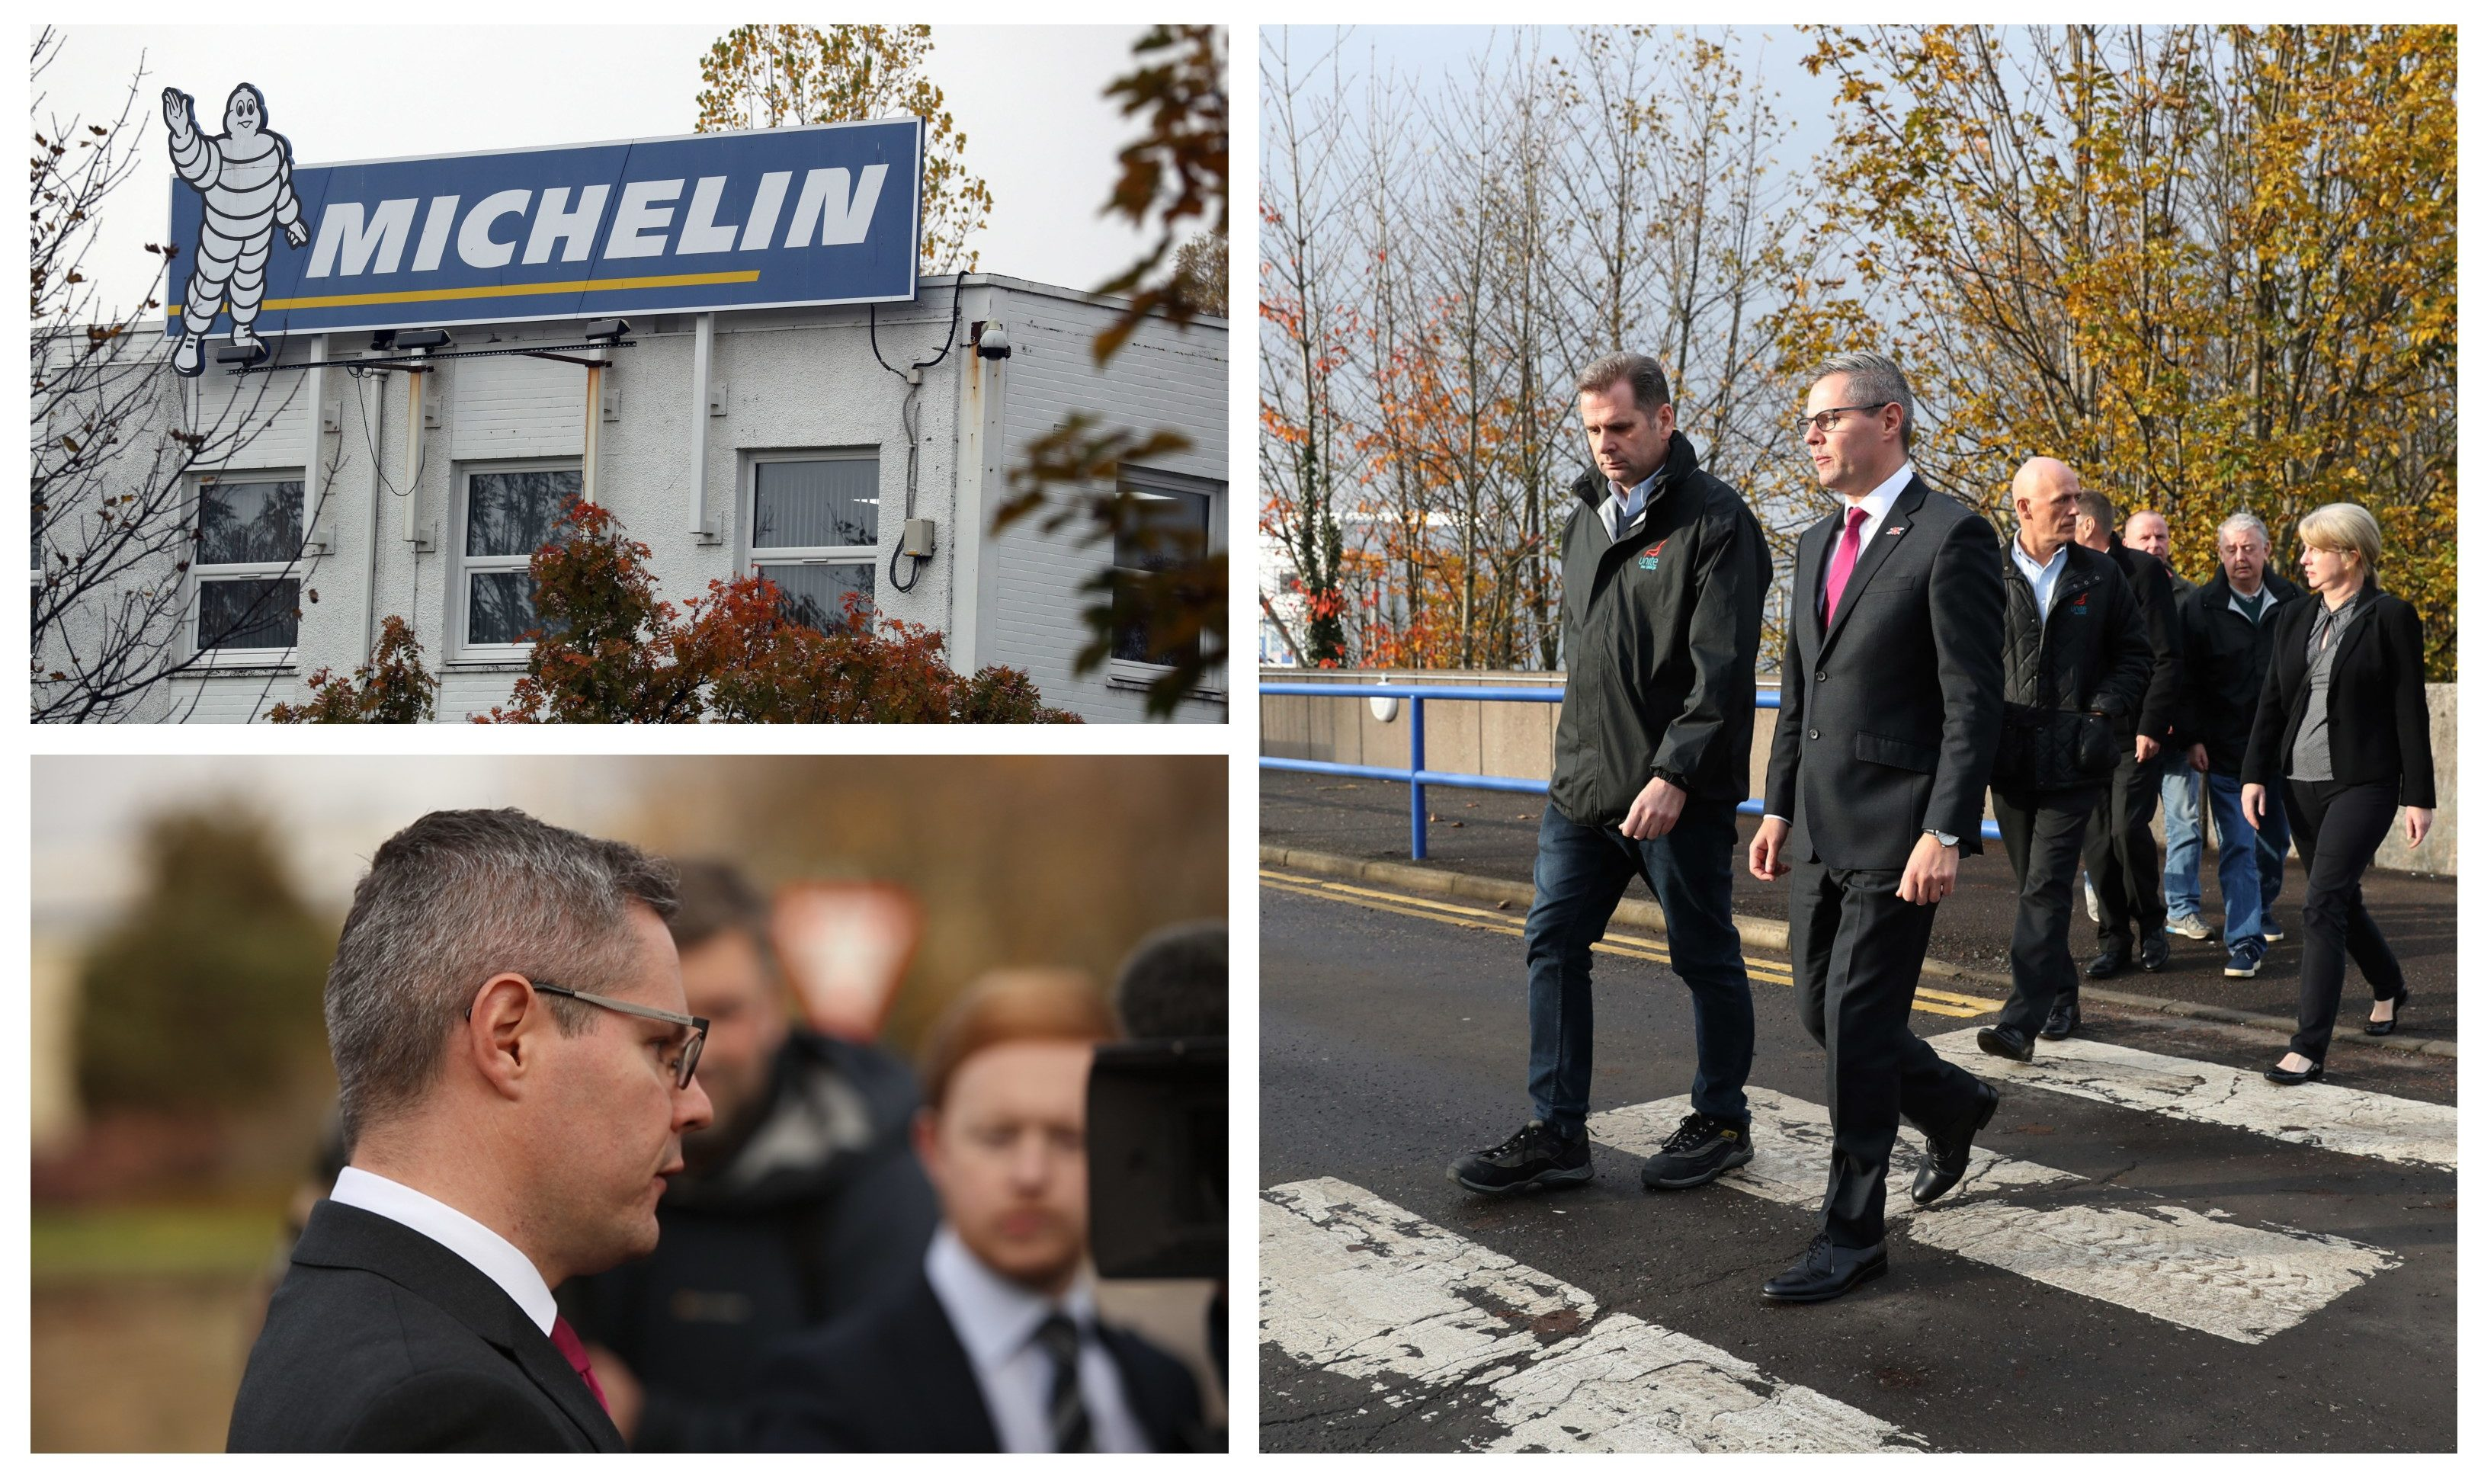 Derek Mackay at the Michelin factory in Dundee.